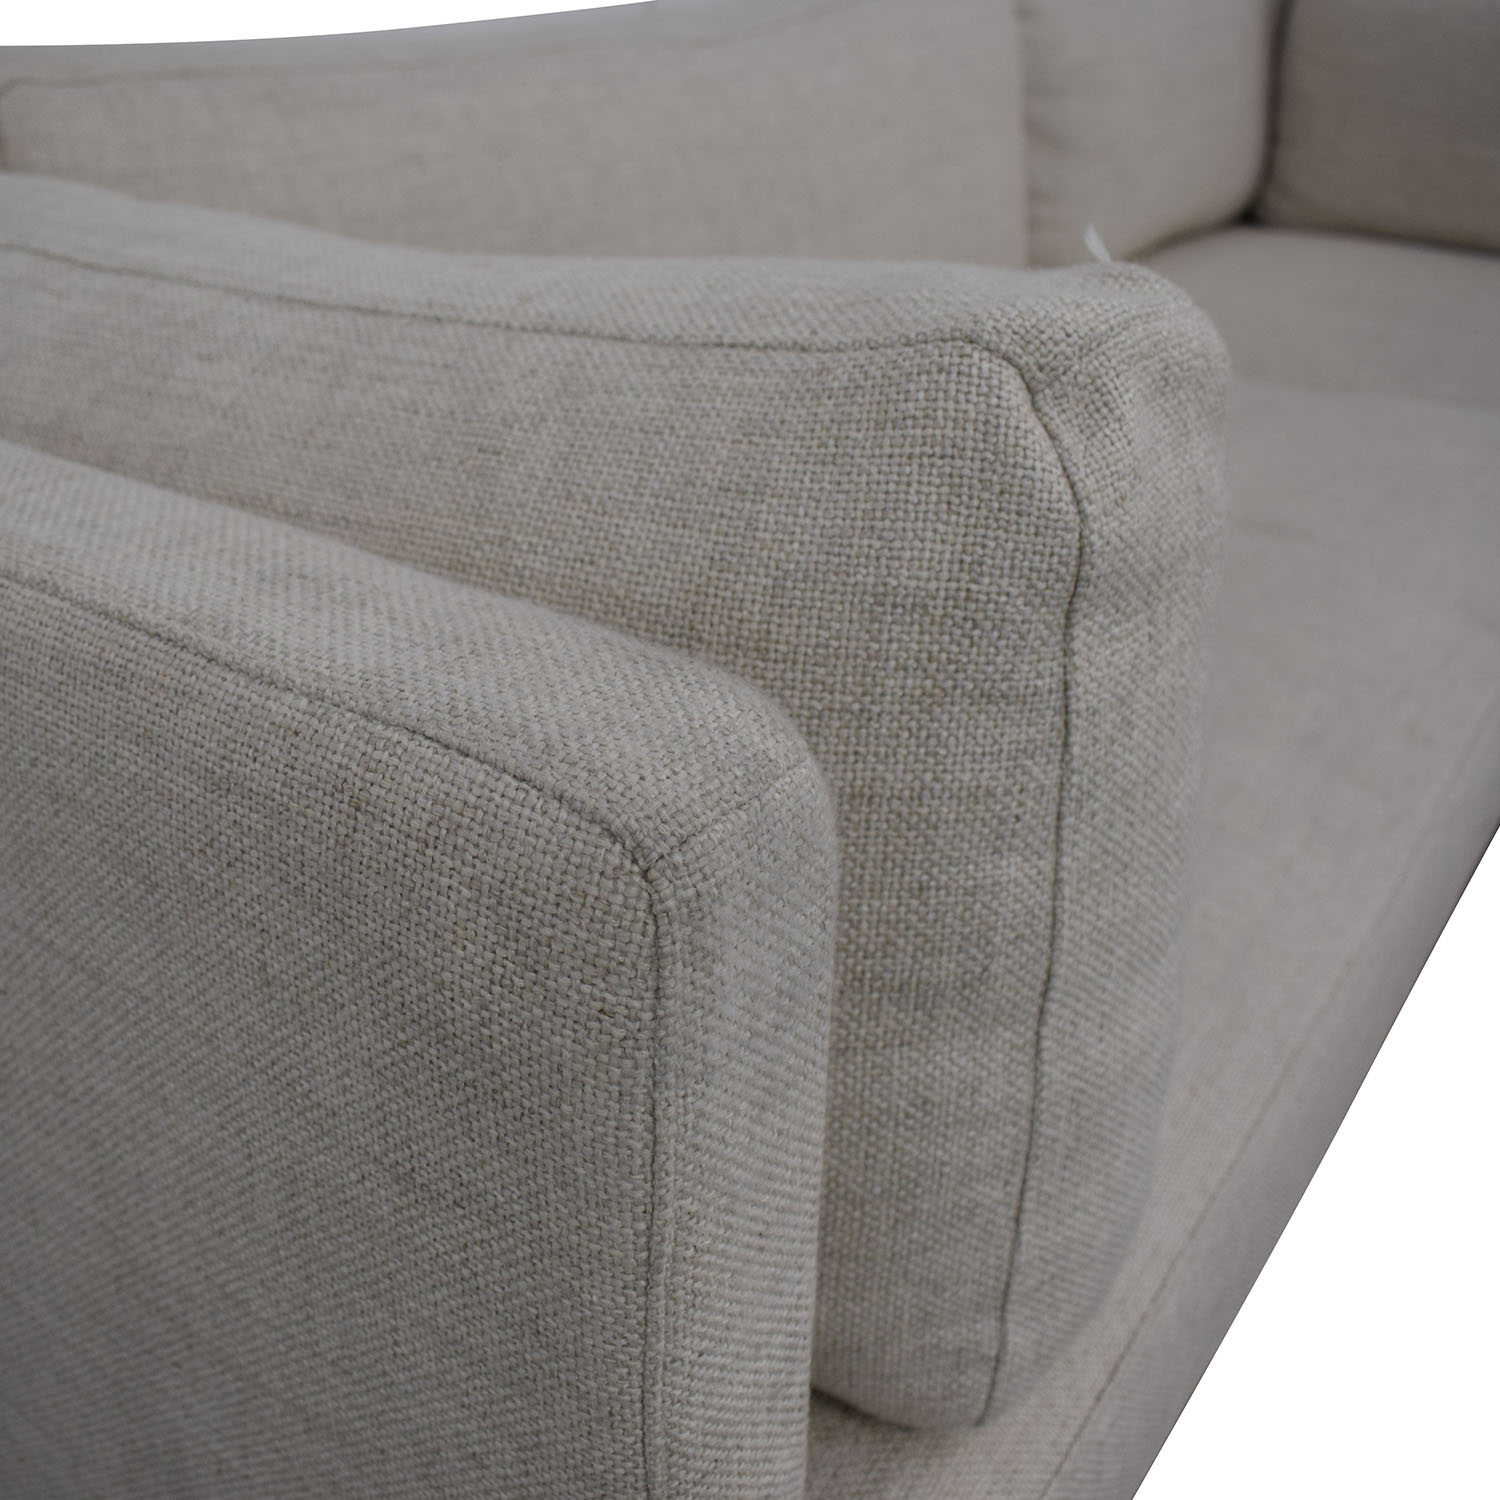 Interior Define Jasper Pebble Weave Right Chaise Sectional dimensions